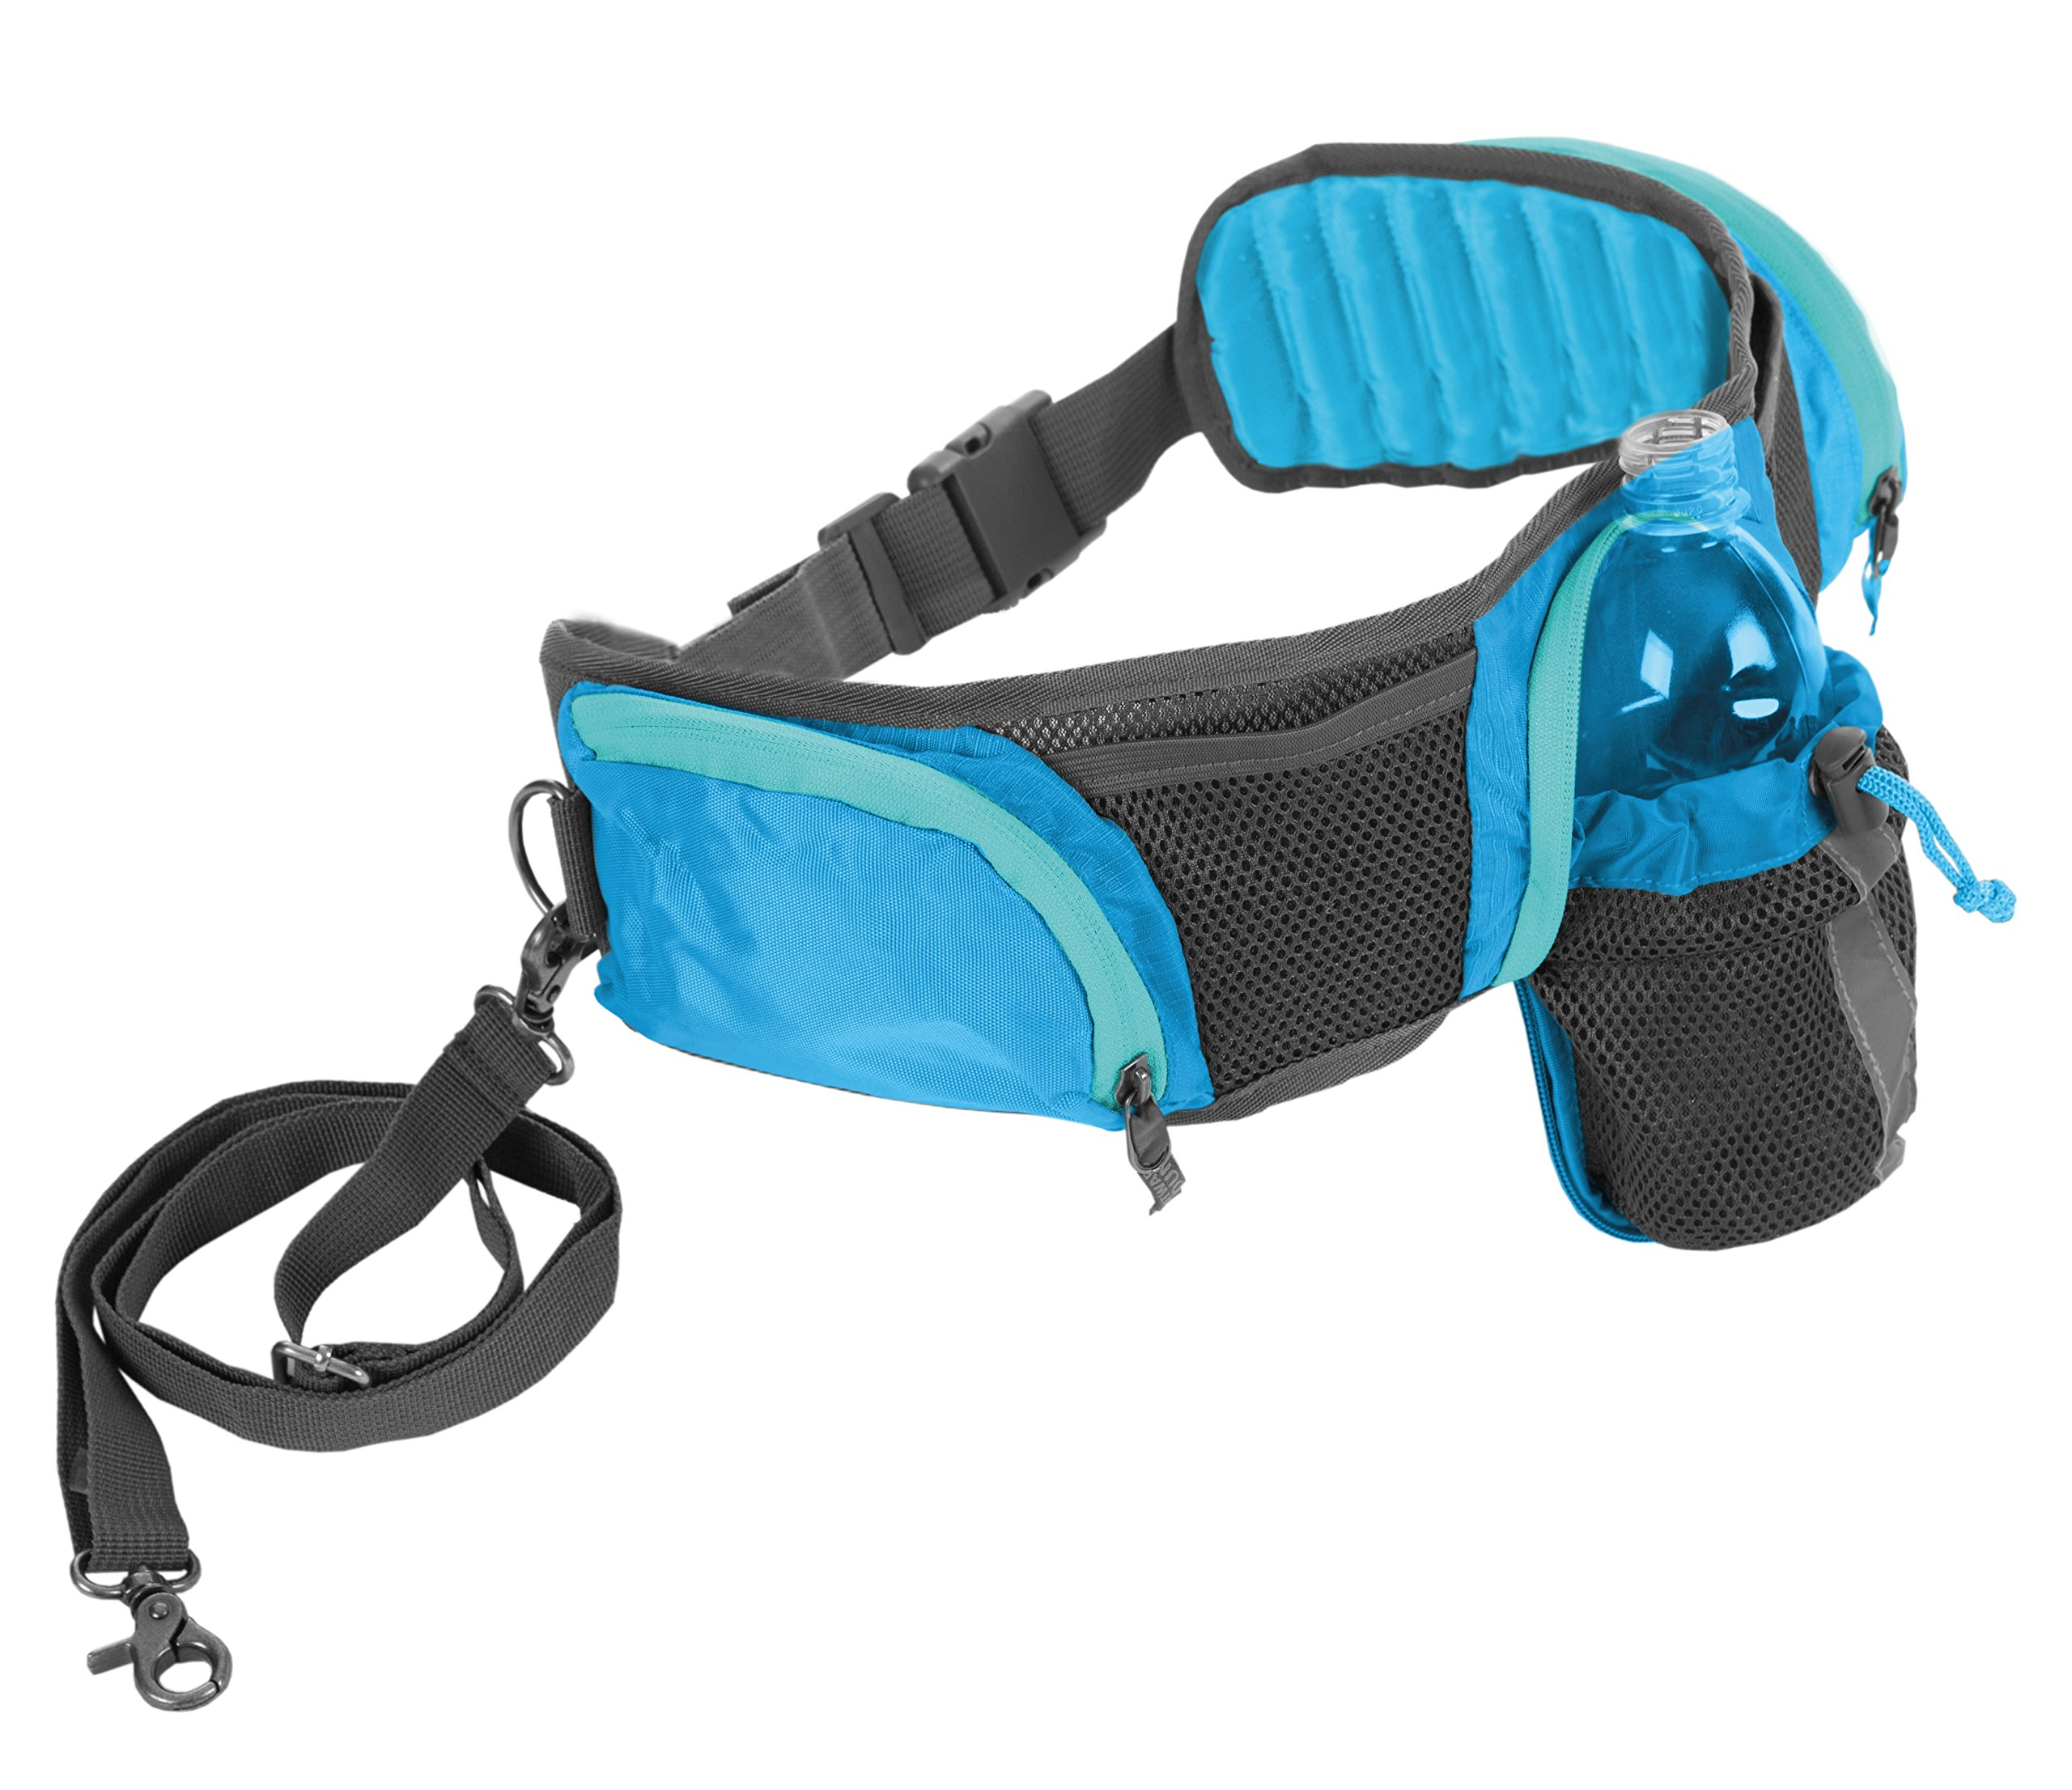 Outward Hound Hands Free Leash For Dogs, Hands Free Hipster Dog Leash by, Blue